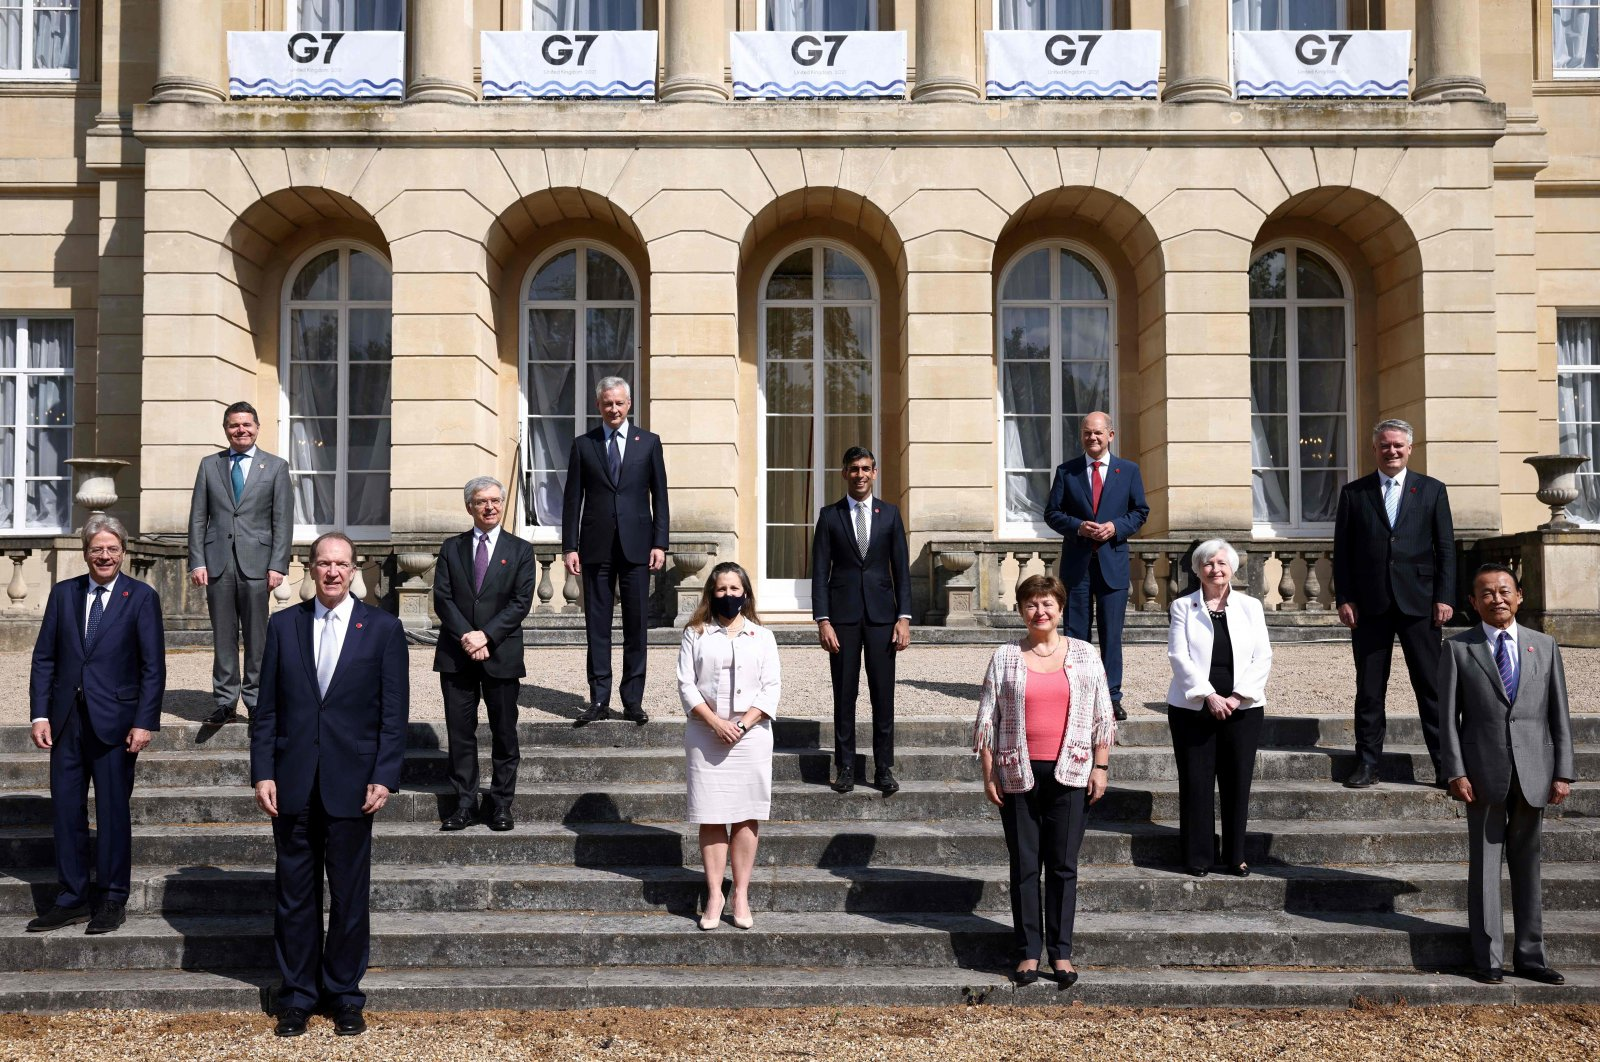 G-7 finance ministers pose for a photo on the second day of the G-7 Finance Ministers Meeting, at Lancaster House in London, U.K., June 5, 2021. (AFP Photo)